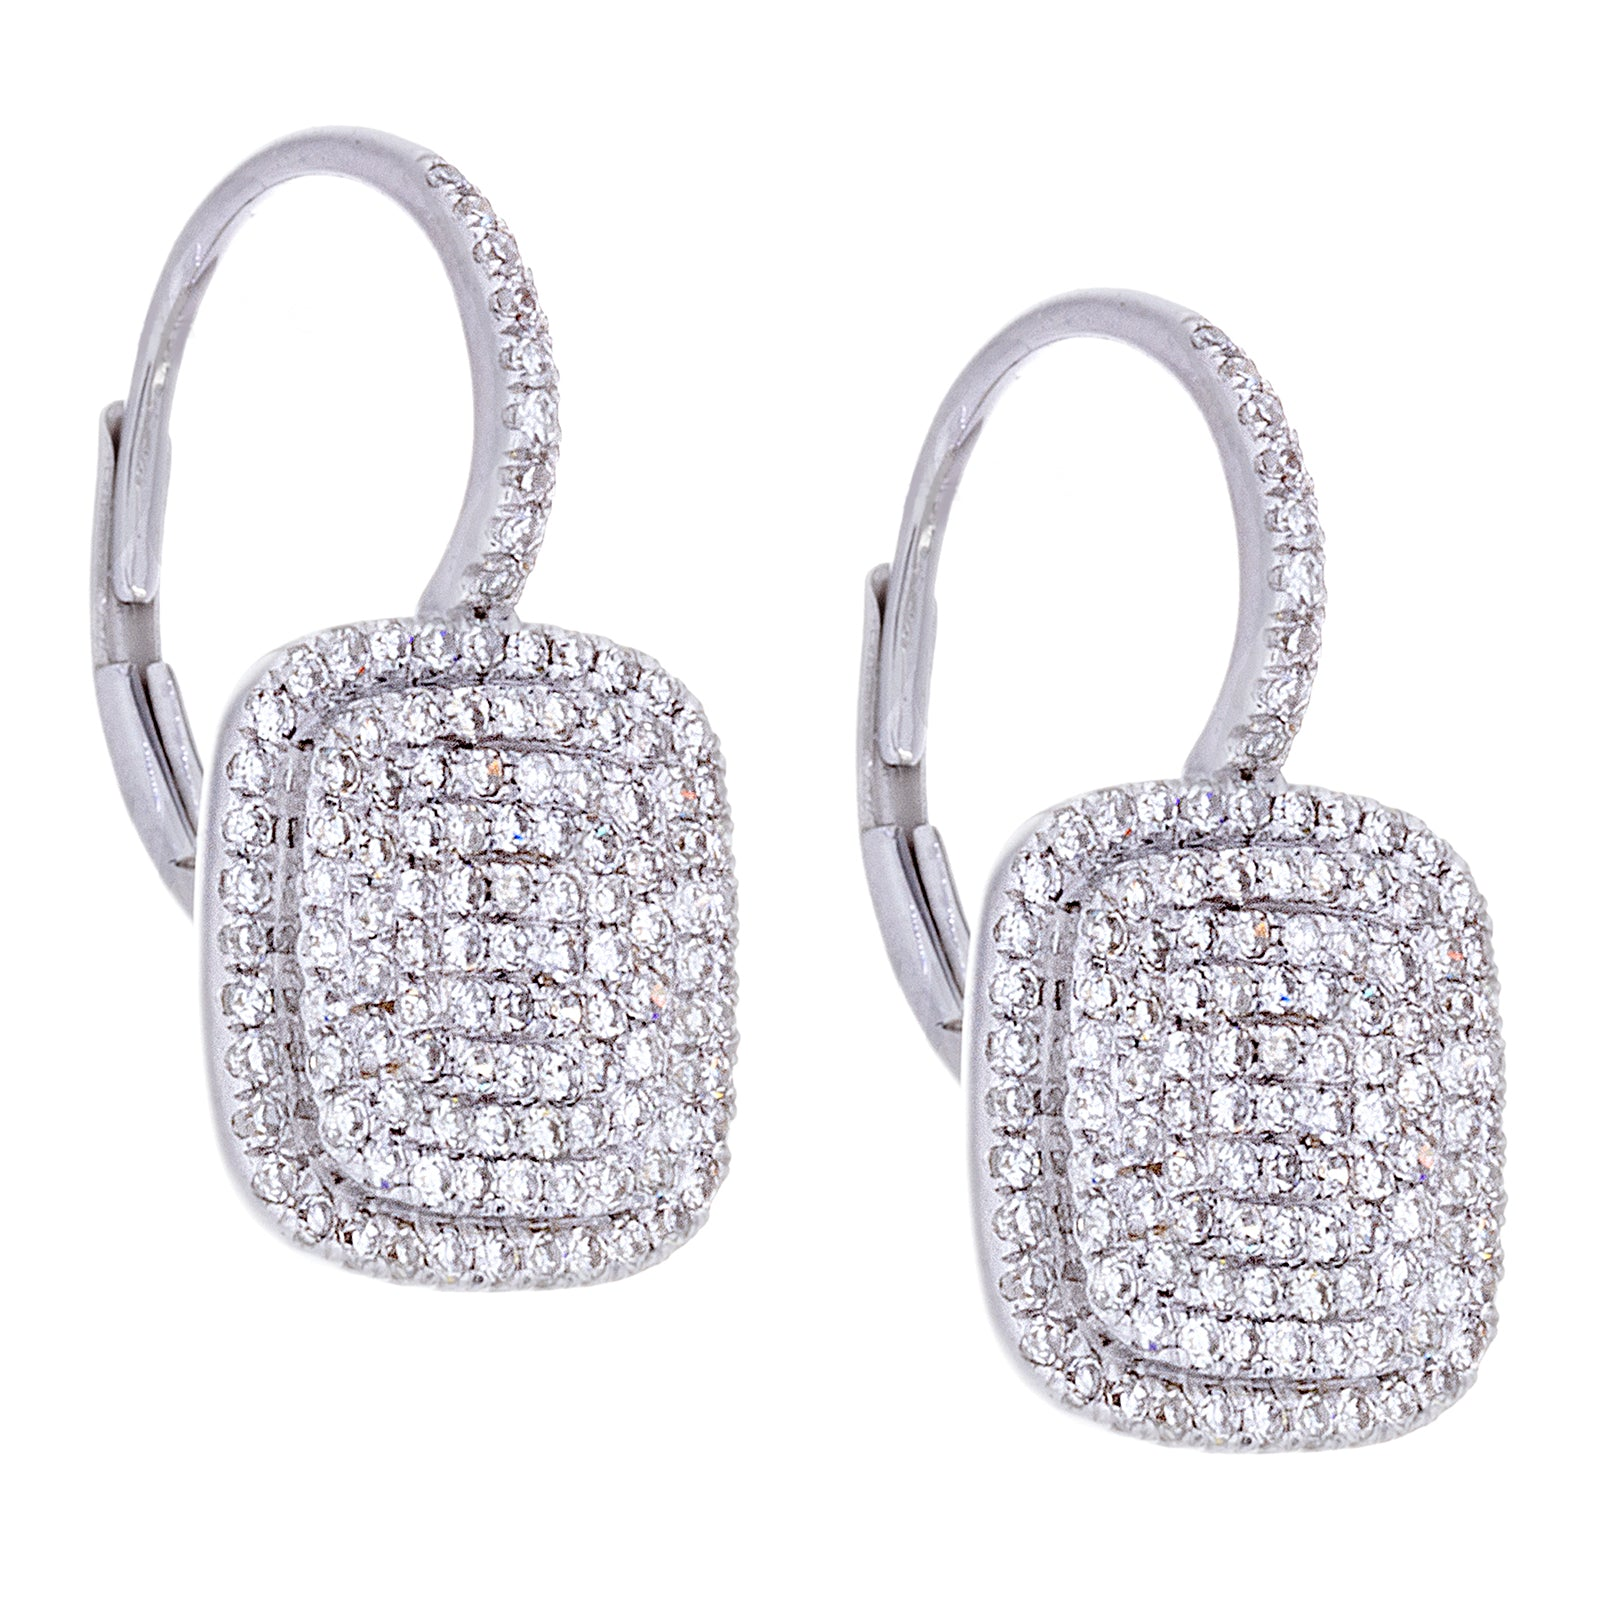 Diamonds Pave & 14K White Gold Earrings - SOLD/CAN BE SPECIAL ORDERED WITH 4-6 WEEKS DELIVERY TIME FRAME